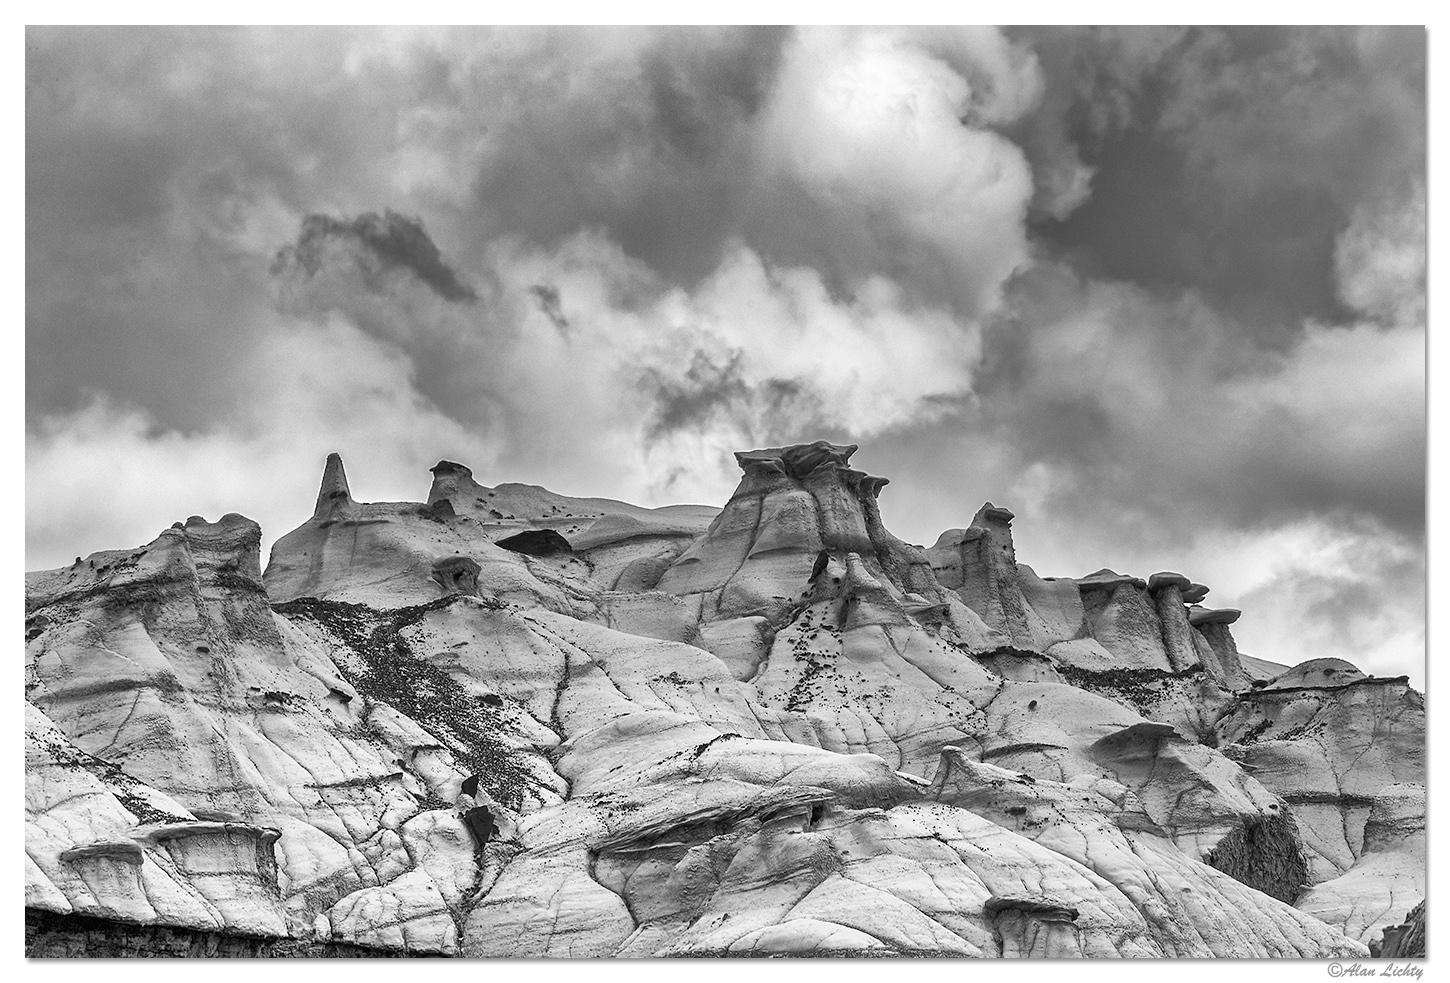 Storms over the Bisti